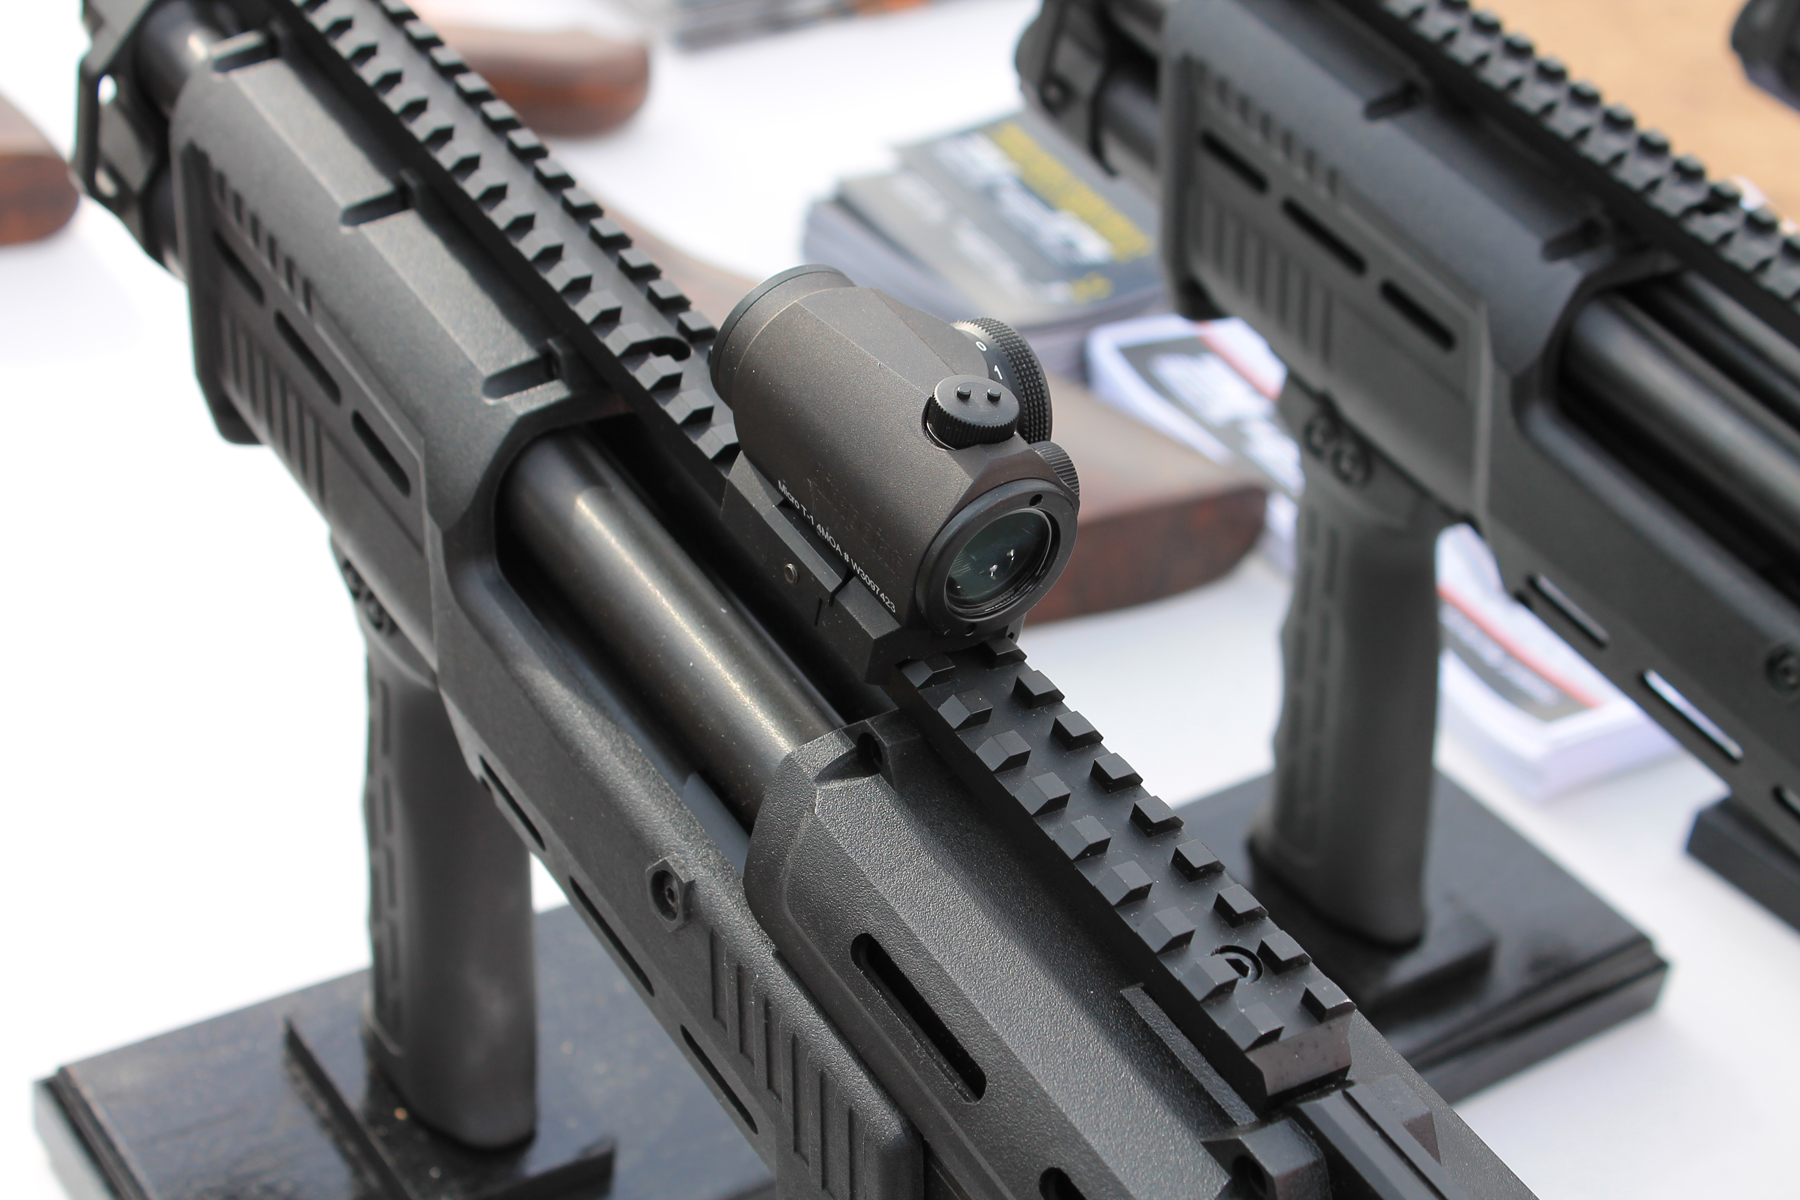 Standard DP-12 with optic